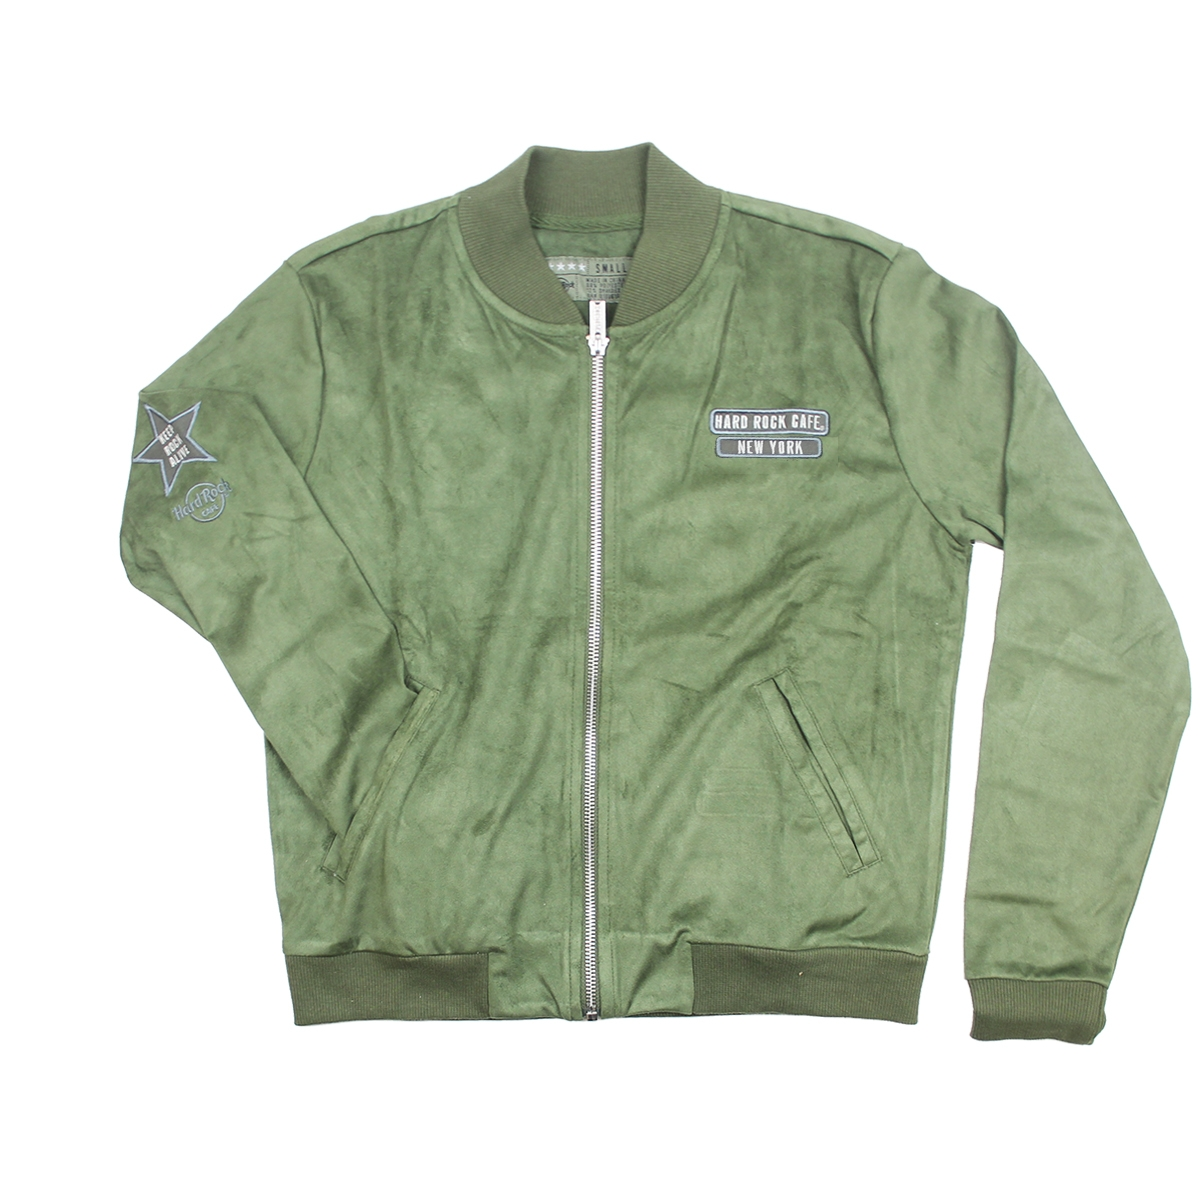 Ladies Green Suede Military Jacket, New York 0